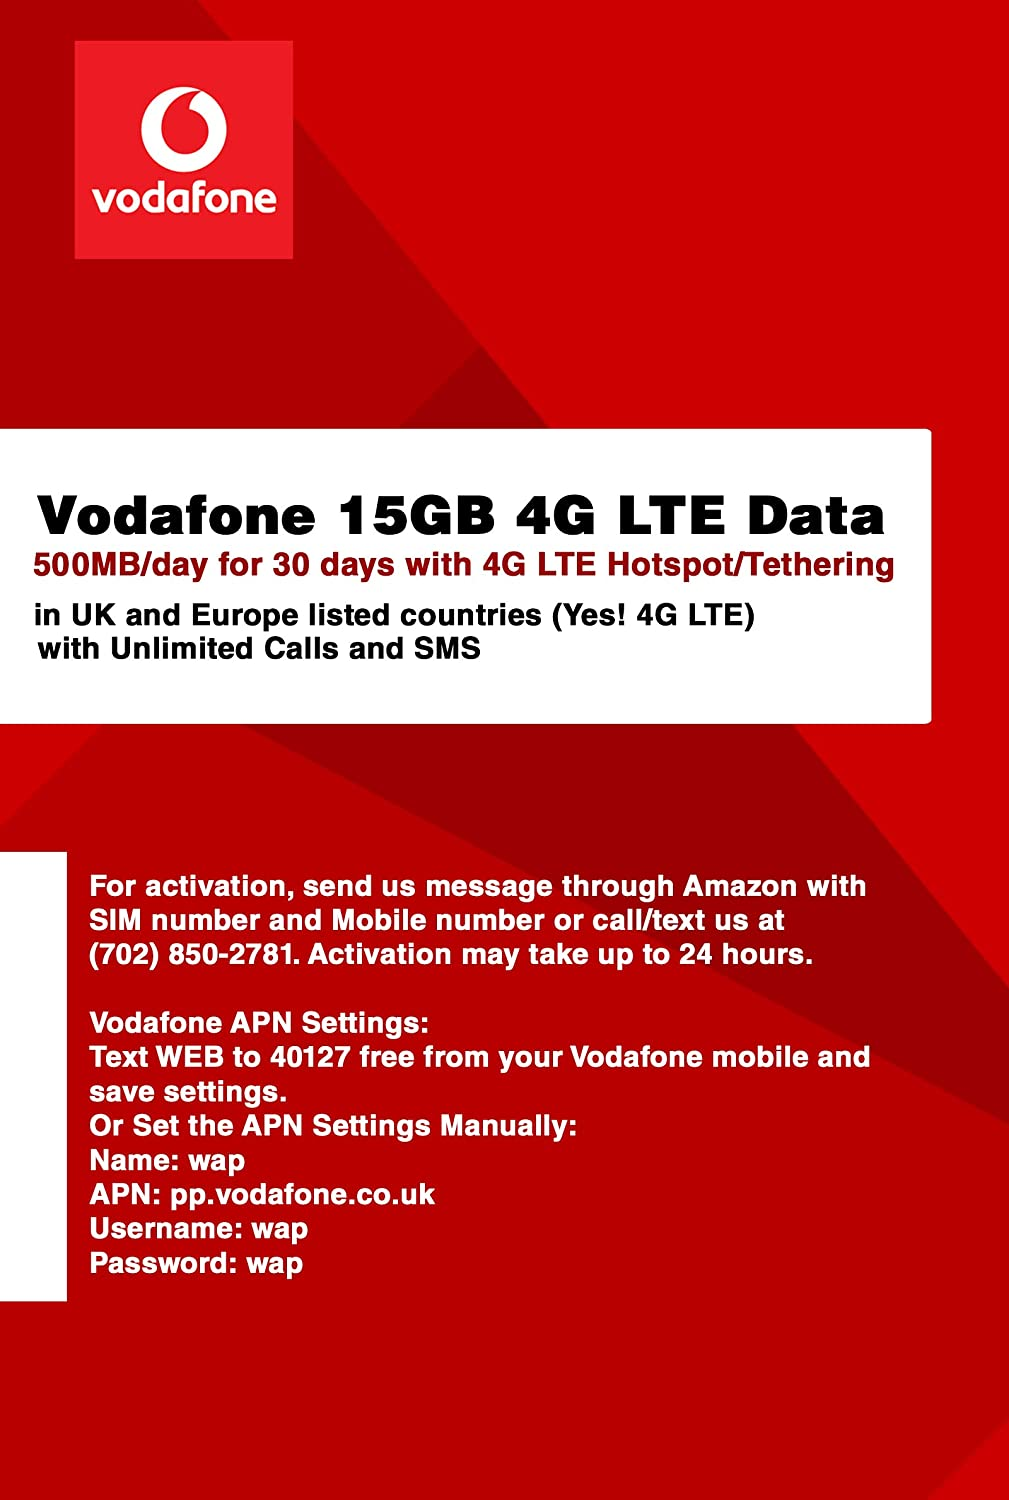 Vodafone 10GB 4G LTE Data (500MB/day for 20 Days) with 4G LTE  Hotspot/Tethering in UK and Europe Listed Countries (Yes! 4G LTE) and  Unlimited Calls